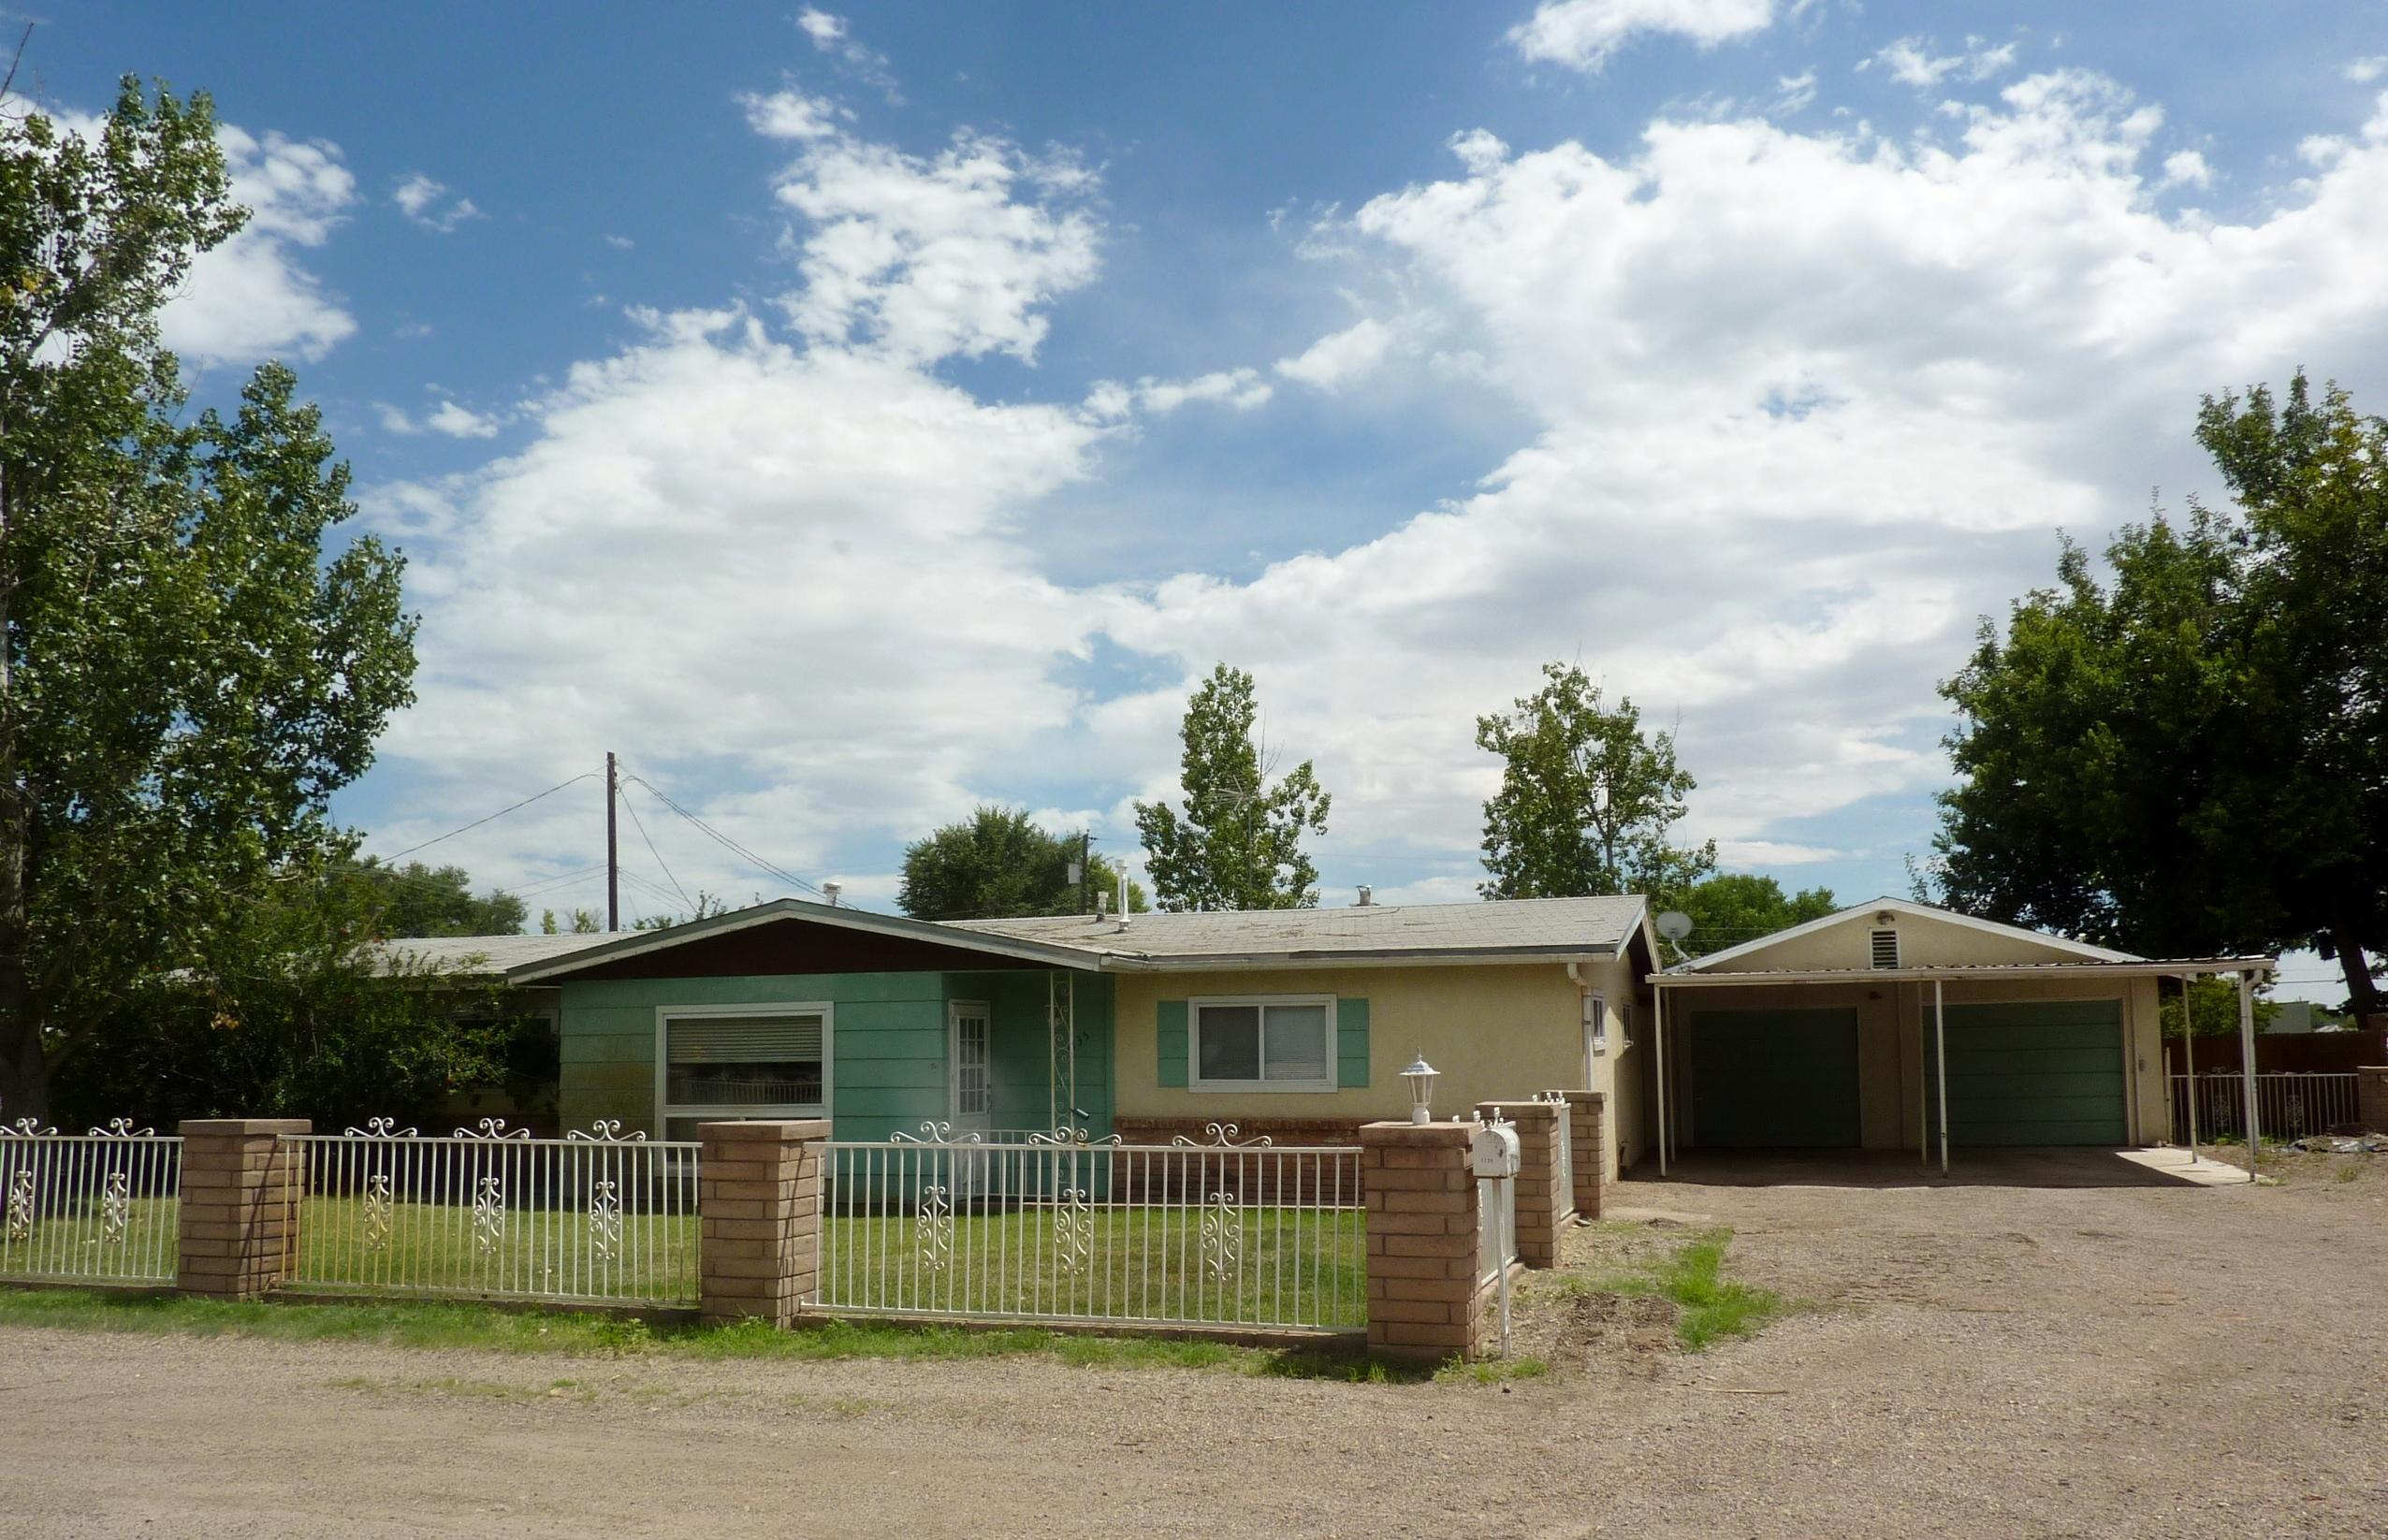 Plenty of space on this 3 or 4BR 1.5BA home on 1/2 Acre in Bosque Farms. Home updates but has a lot to offer. Features 2 living areas with a wood burning fireplace and a wood stove. Open floor plan. Detached shop measures 26X35 and has a lift. Property also has a 12X20 Artist studio (with A/C & Heat-no water). Detached garage 24X38 with storage. Barn with small stall & storage. Carport. Covered Patio. Plenty of potential on this home. City water & sewer plus irrigation well. New HW heater, kitchen cabinets and roof will be replaced before closing.